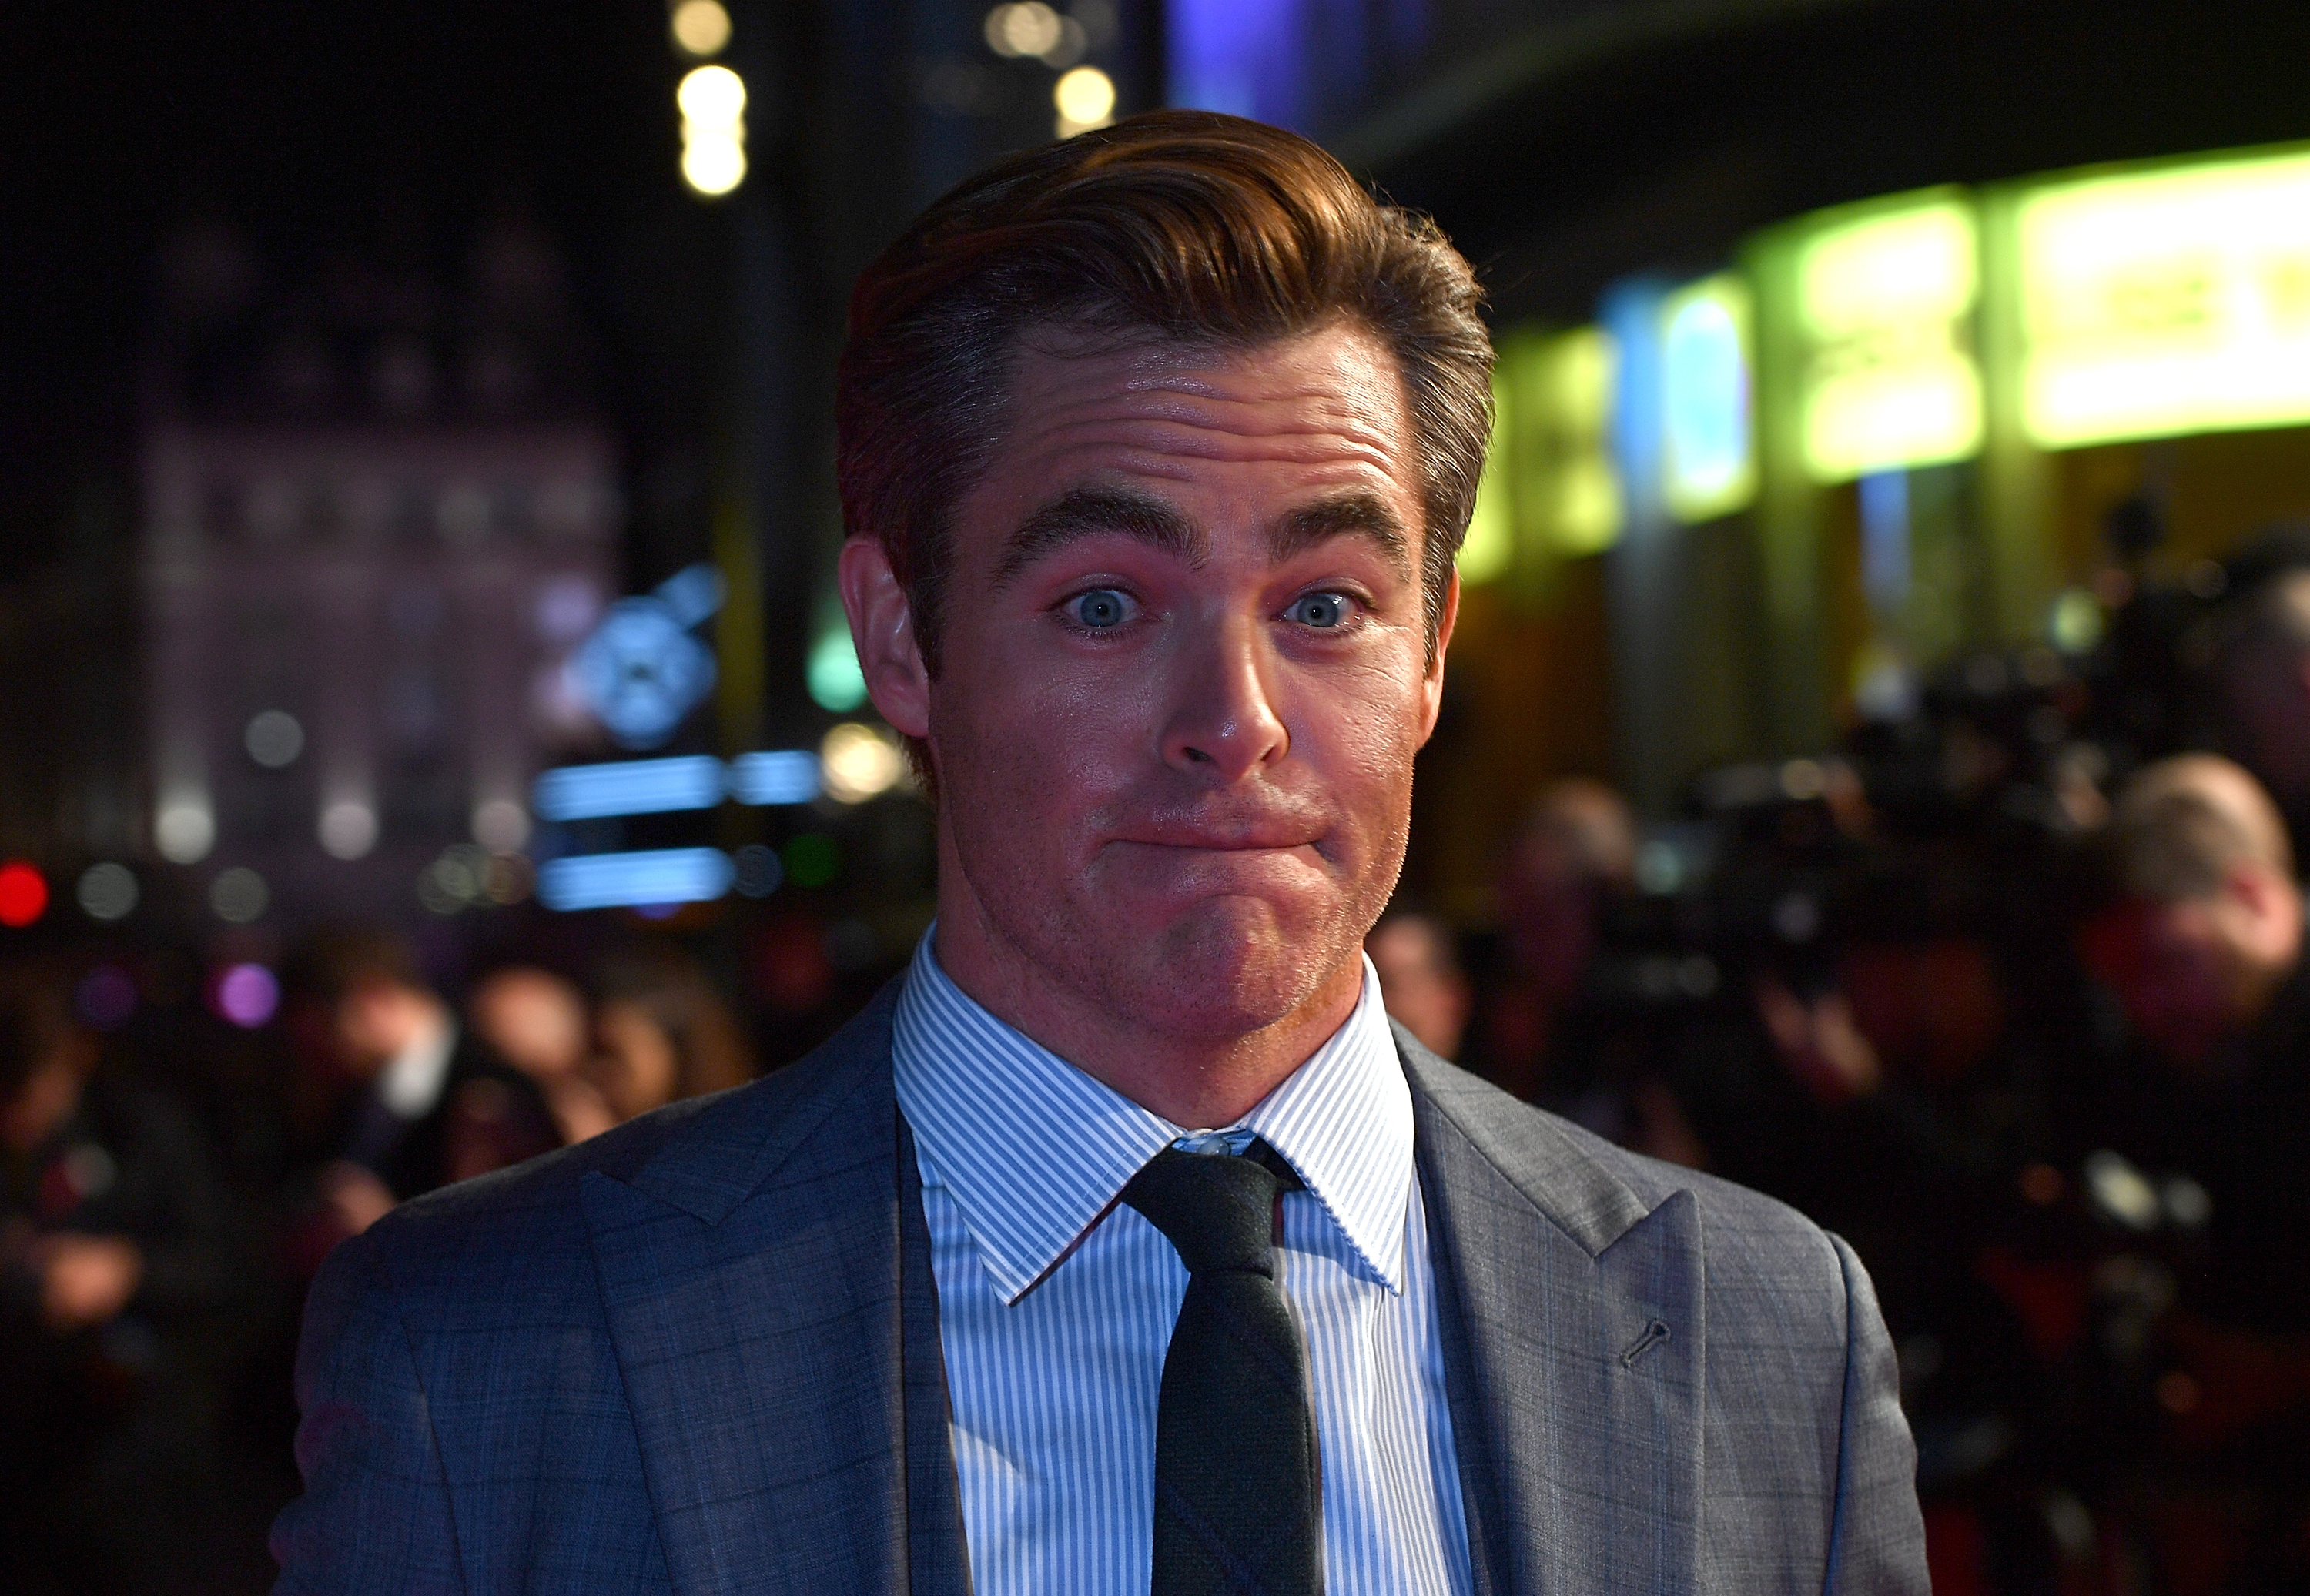 The fuss over Chris Pine getting his penis out on screen is 'ridiculous', says Outlaw King director